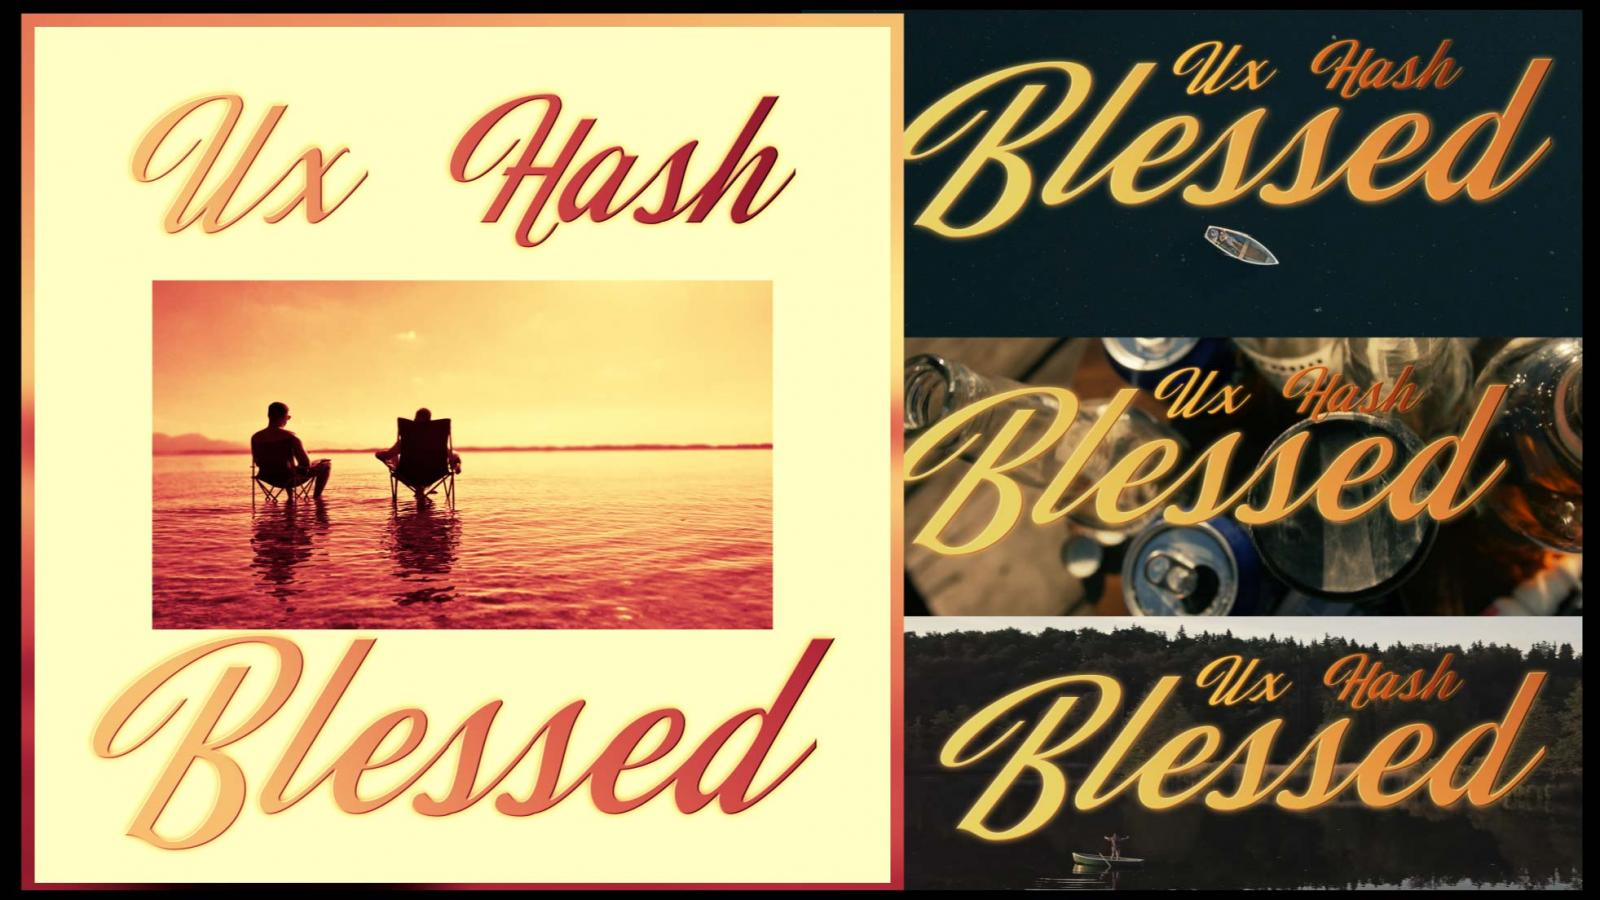 Upcoming: UX X HASH - Blessed